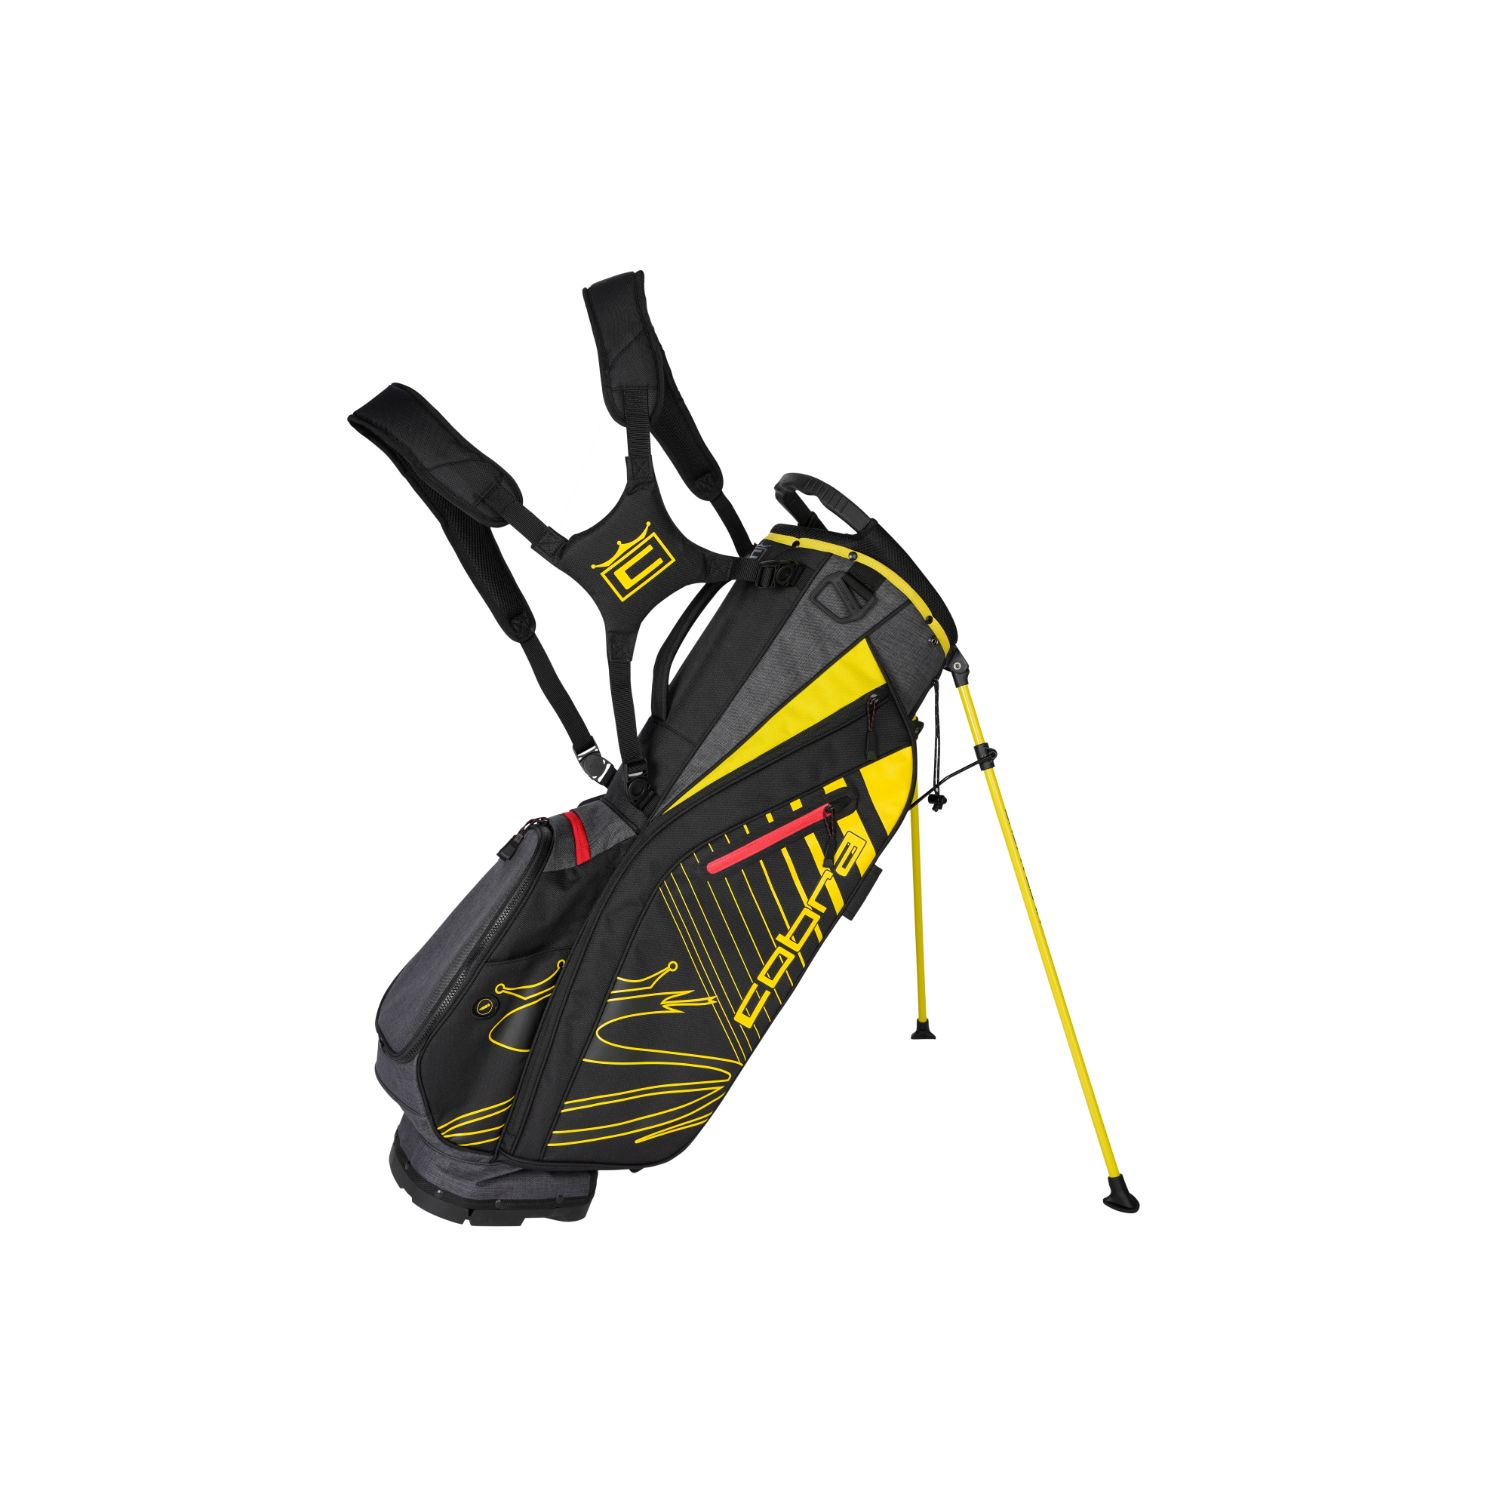 Cobra Golf 2020 Ultralight Stand Bag Black-Yellow